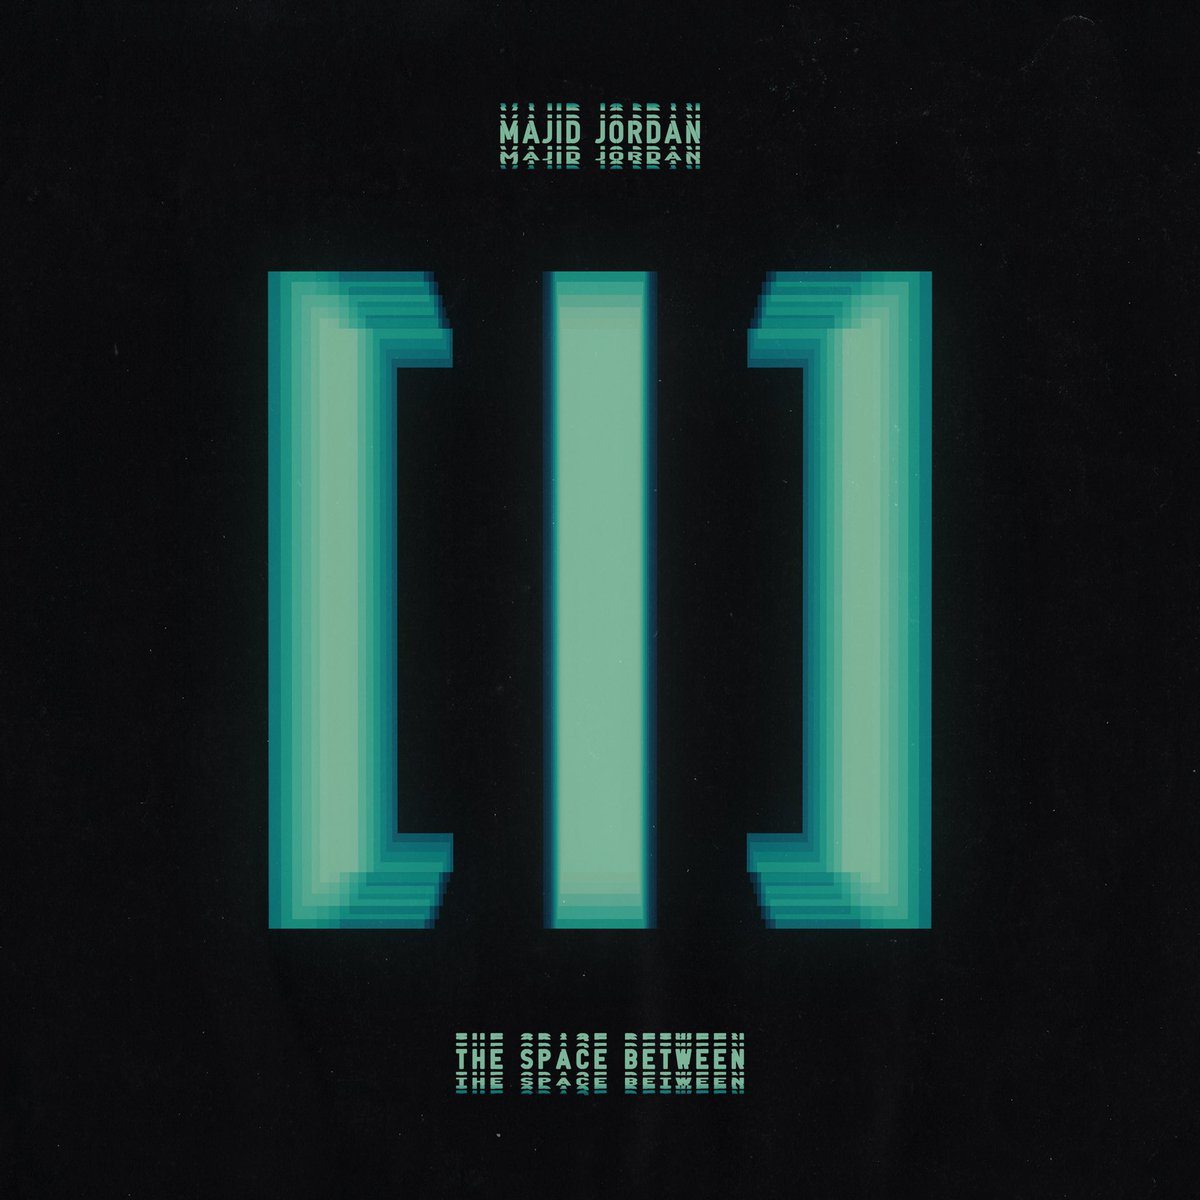 RT @majidjordan: [|] THE SPACE BETWEEN [|] OUT NOW  https://t.co/DWAT9uLyW8 https://t.co/zJvgSqVR4z